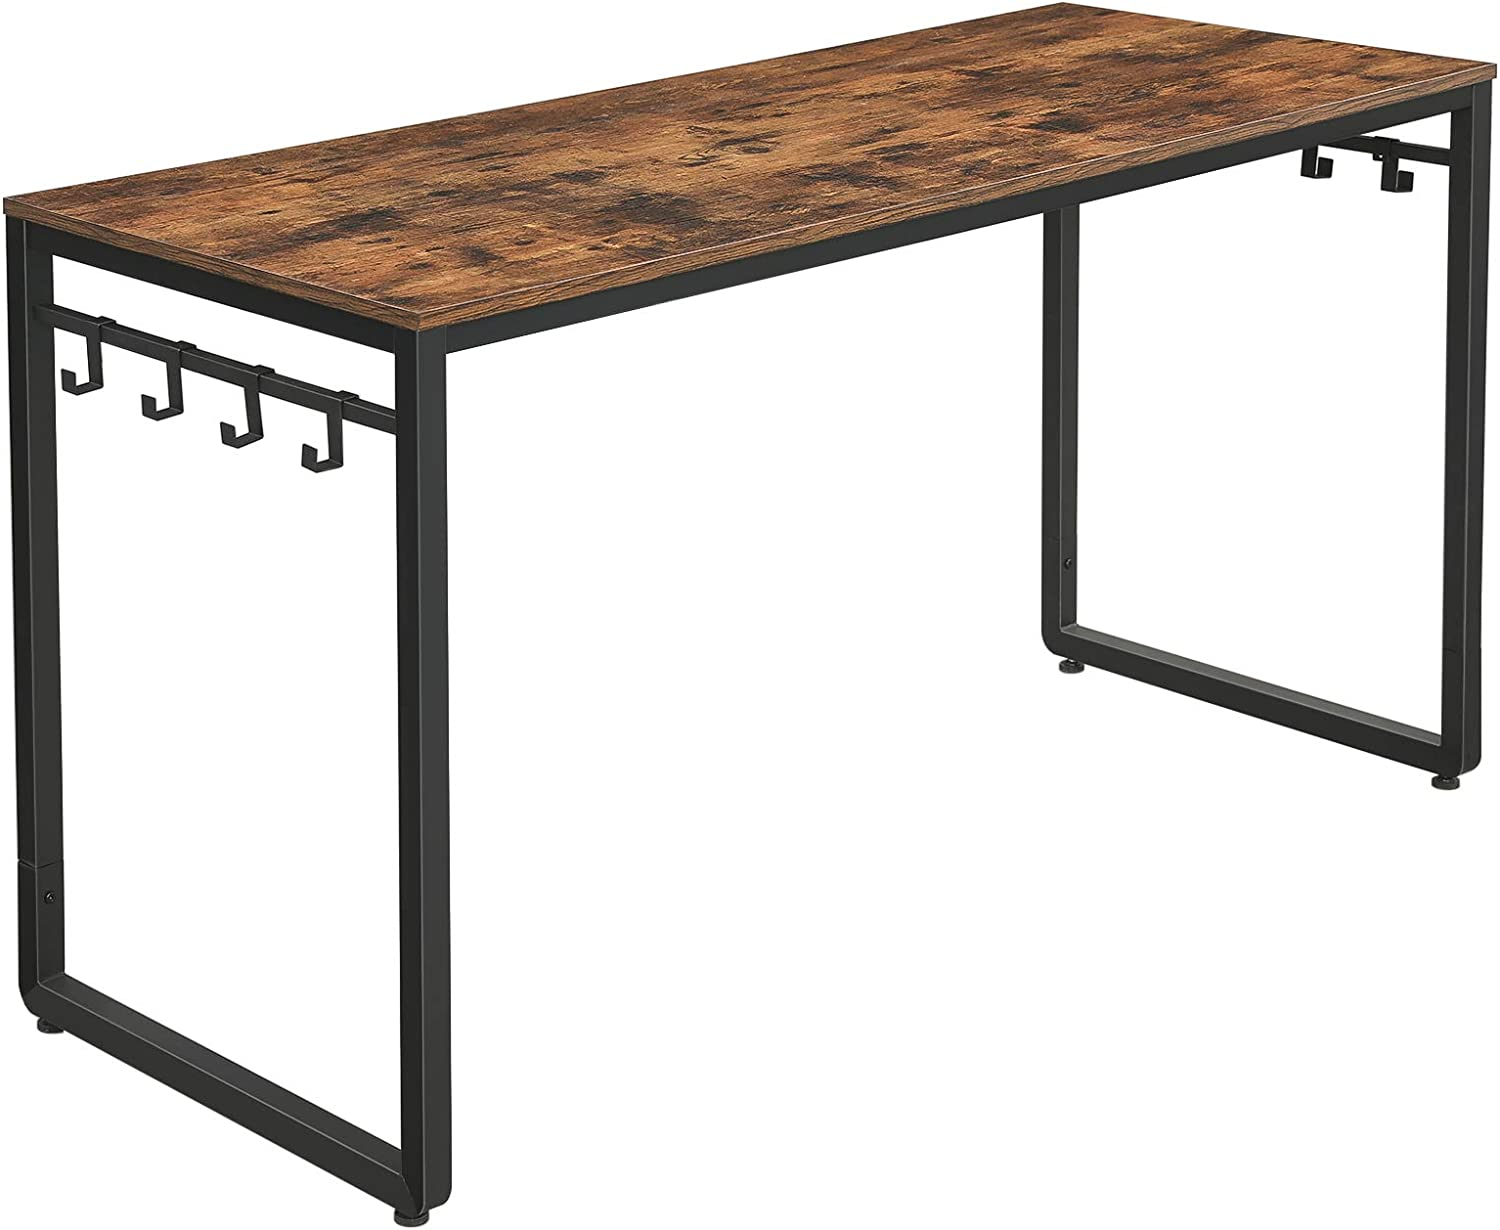 VASAGLE ALINRU Computer Desk, 55 Inch Writing Desk, Office Desk with 8 Hooks, For Study, Home Office, Easy Assembly, Metal, Industrial Design, Rustic Brown and Black ULWD59X